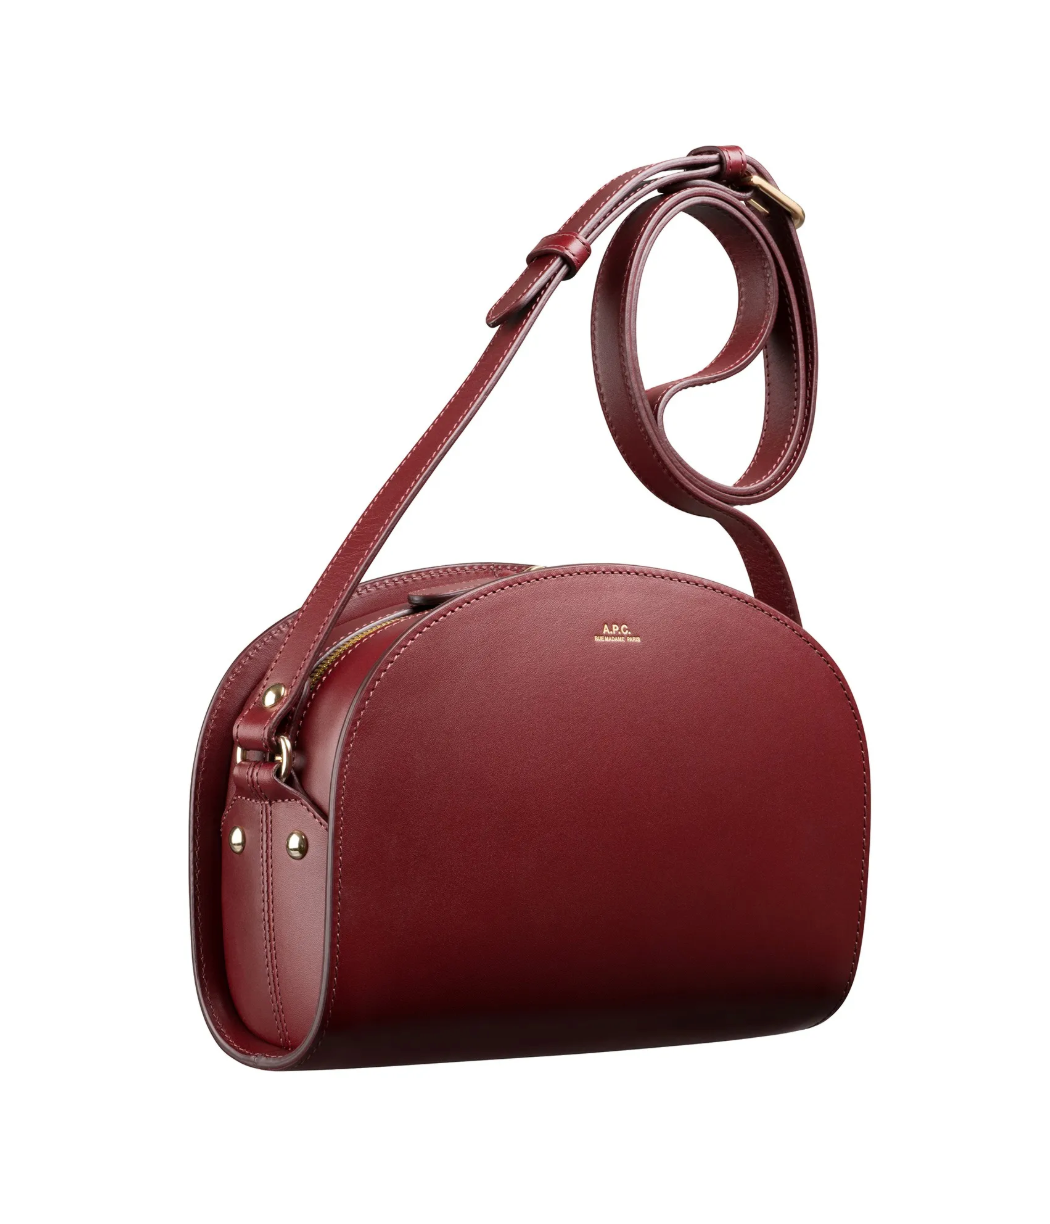 APC Demi-lune bag wine